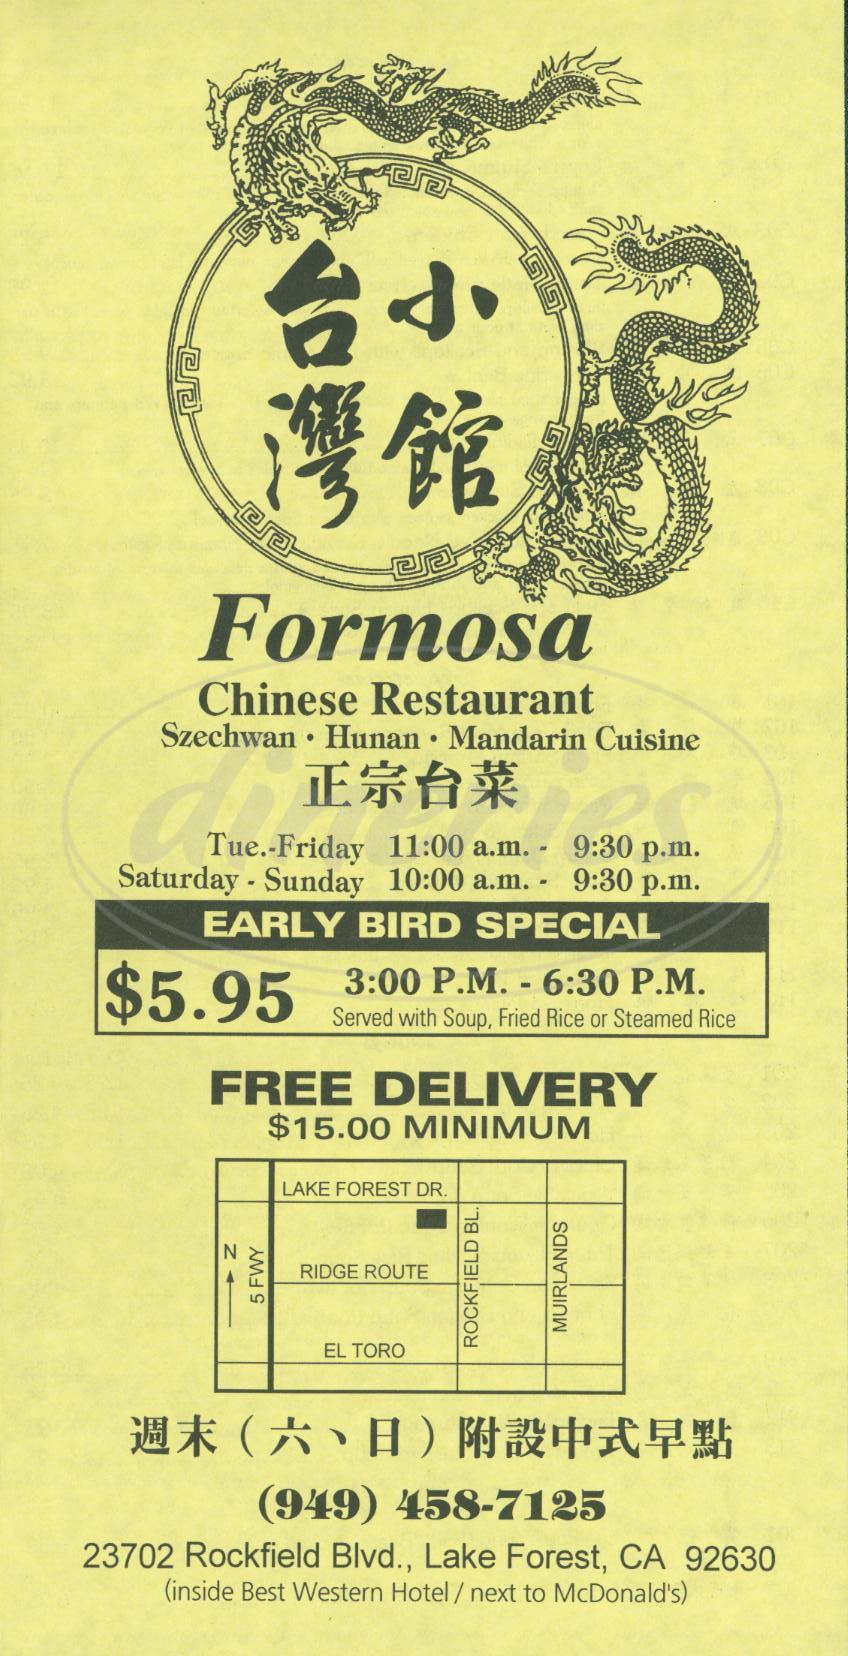 menu for Formosa Chinese Restaurant